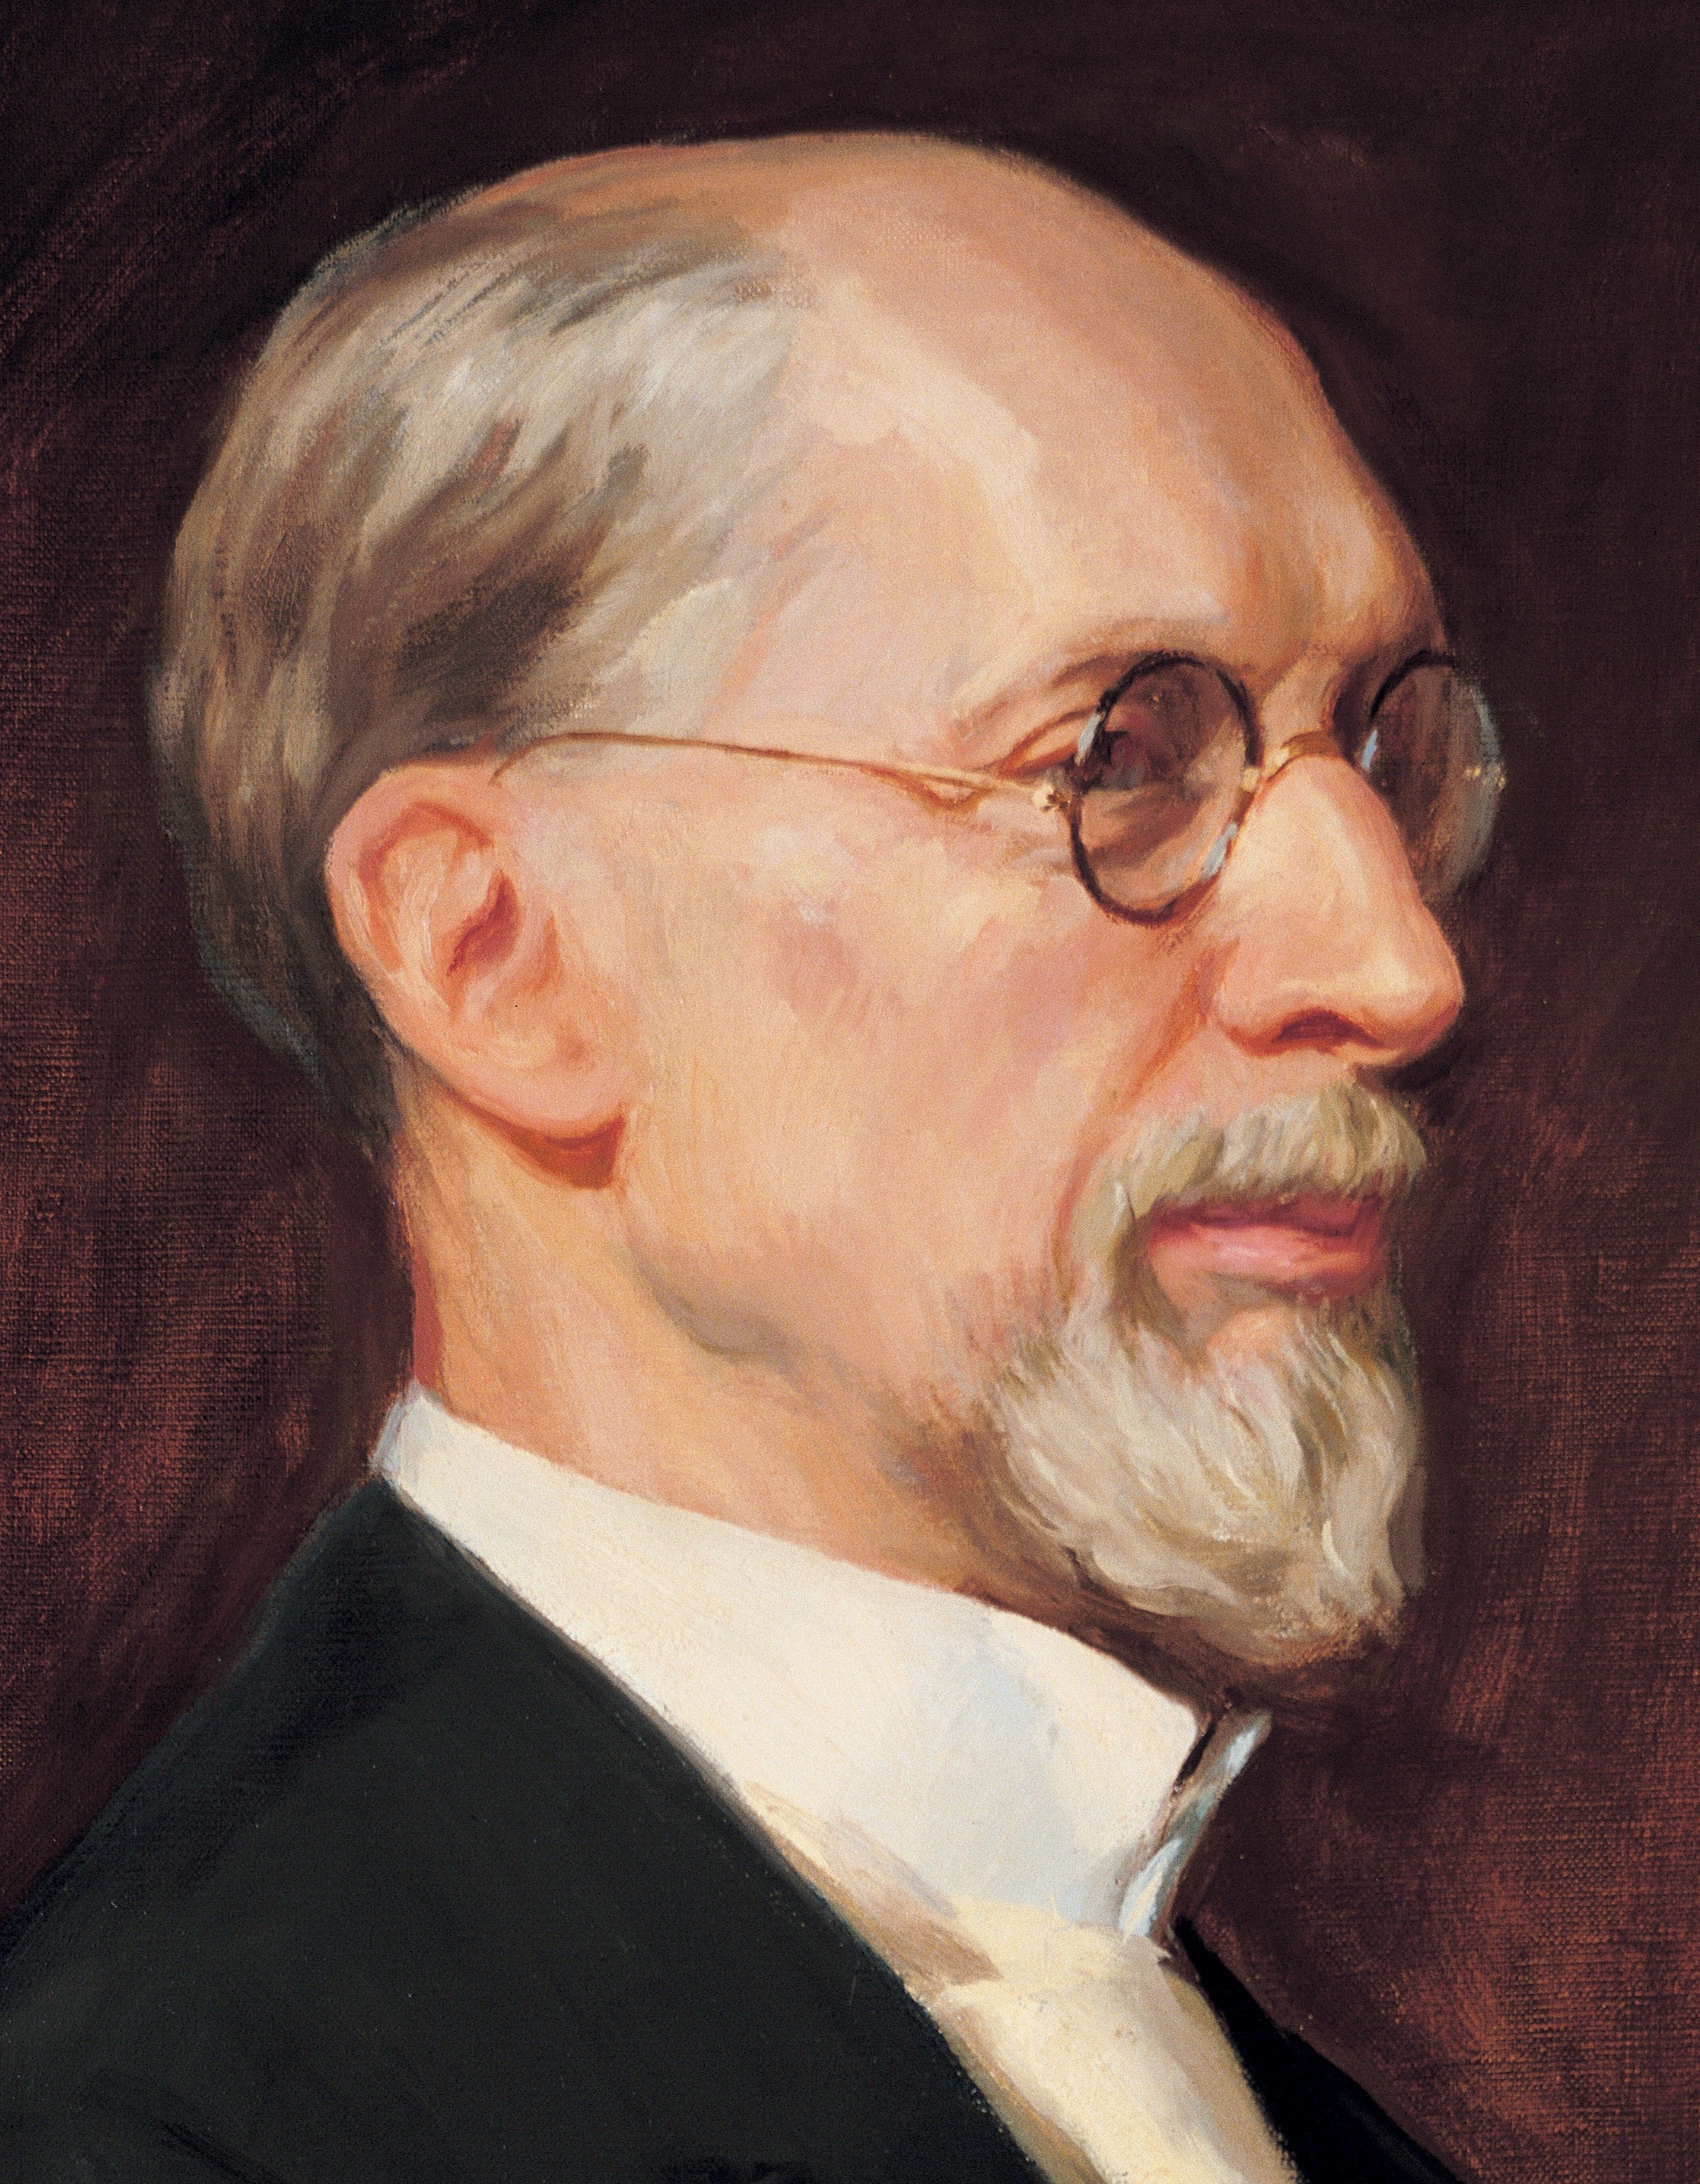 George Albert Smith, by Lee Greene Richards; GAK 513; Our Heritage, 110–14. President George Albert Smith was the eighth President of the Church from 1945 to 1951.